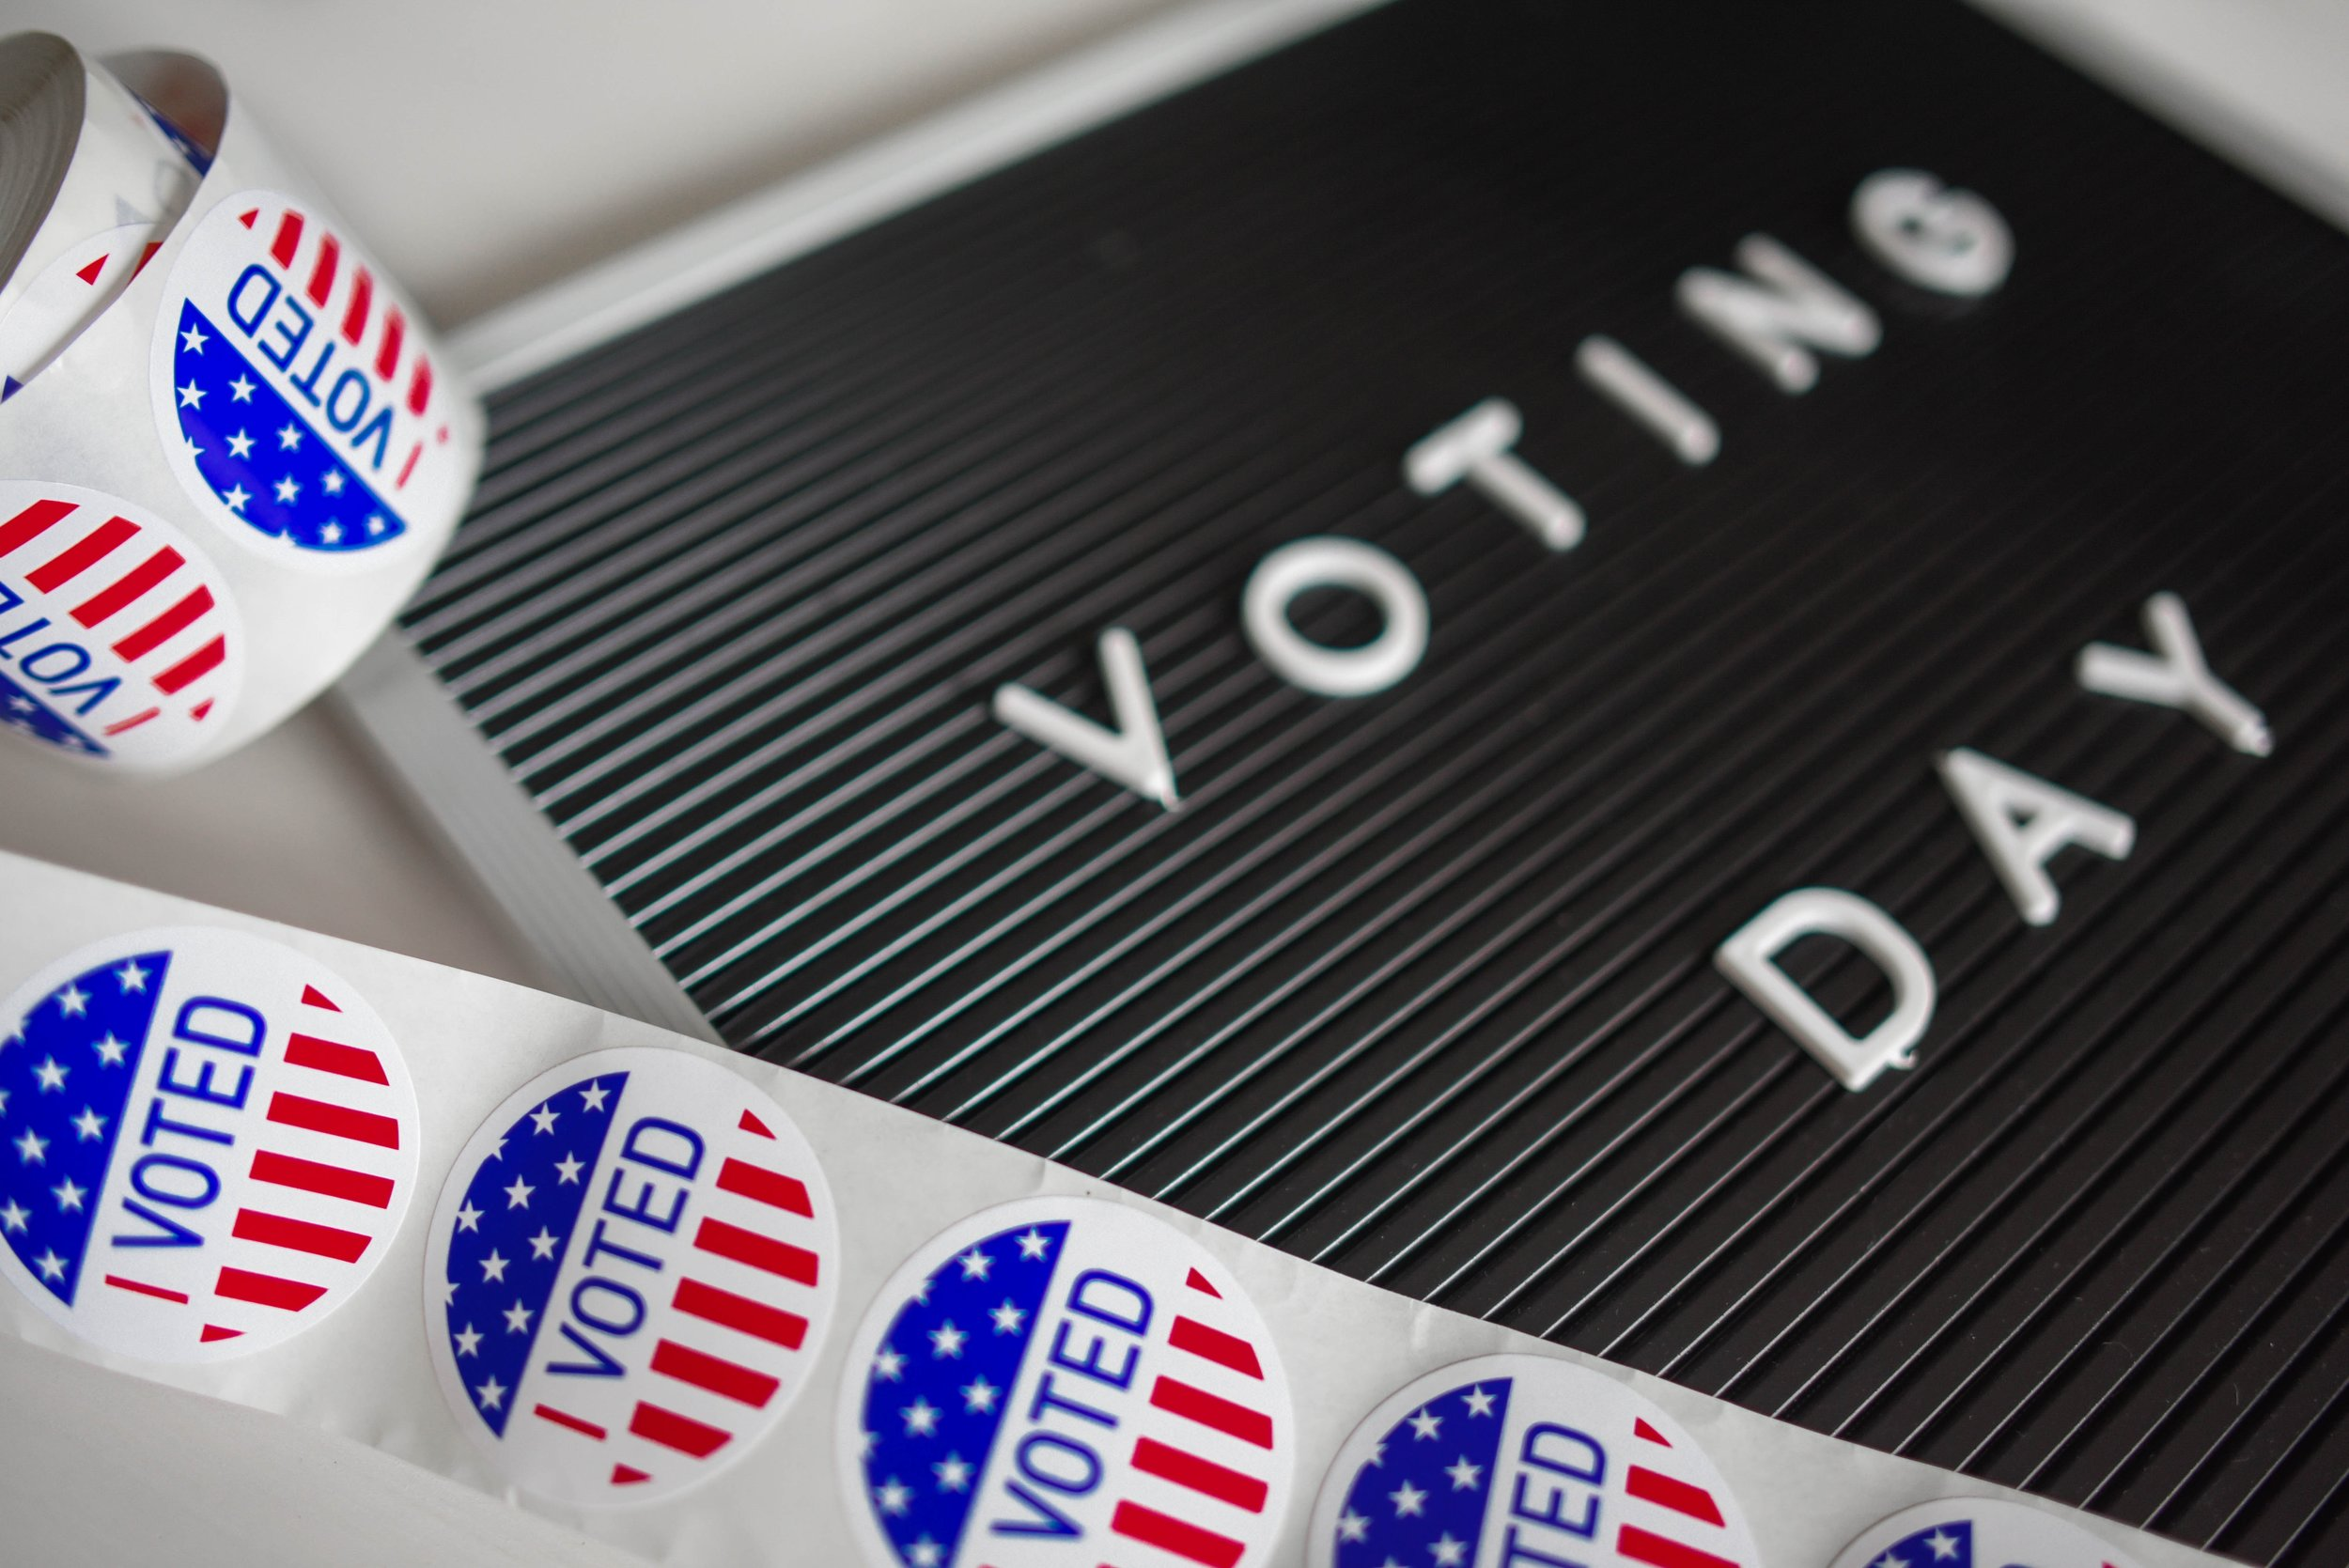 Voting_Day_with_Stickers.jpg